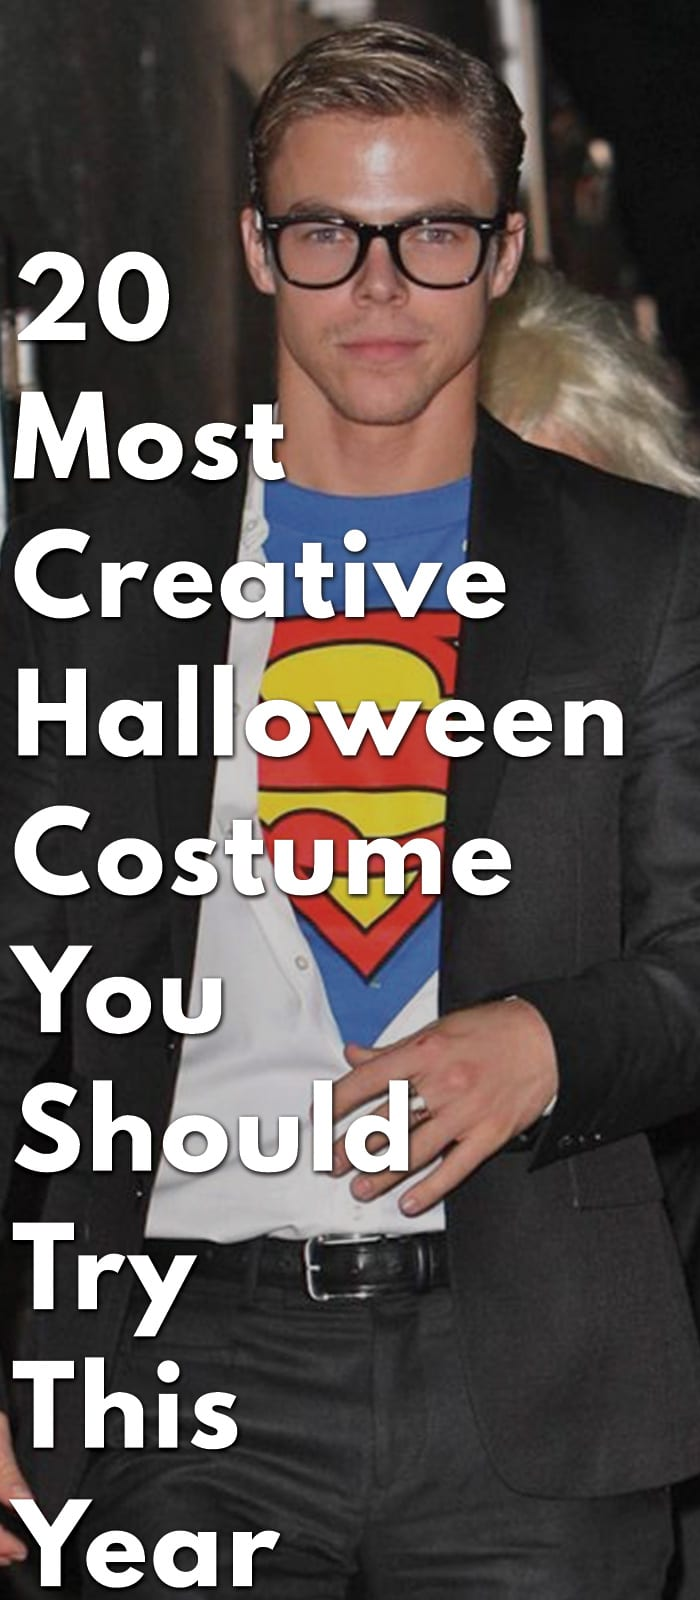 20-MOst-Creative-Halloween-Costume-You-Should-Try-This-Year